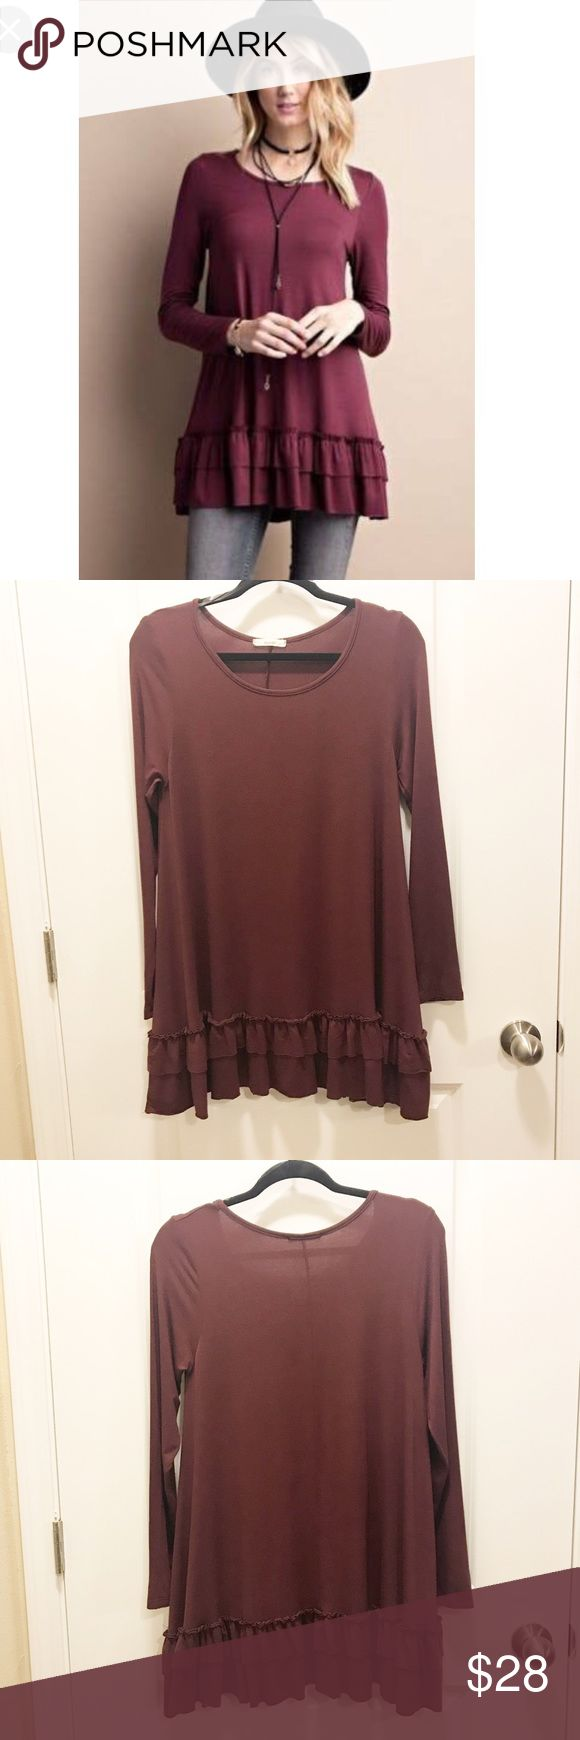 """Boho Chic easel Double Ruffle Tunic Deep Plum This is an easel double ruffle tunic in deep plum, long sleeves. Can be worn with leggings, tights, jeans, or stand alone. So cute! Fabric is 95% rayon, 5% spandex. Size medium.  Measurements:  Best: 17 """" Length: 22 """" Back length: 29 """" Sleeve length: 25.5 """" Shoulders (sleeve seam to seam): 15 """"  Thank you for looking. Please feel free to check out my closet. 🤙🏼 easel Dresses Mini"""